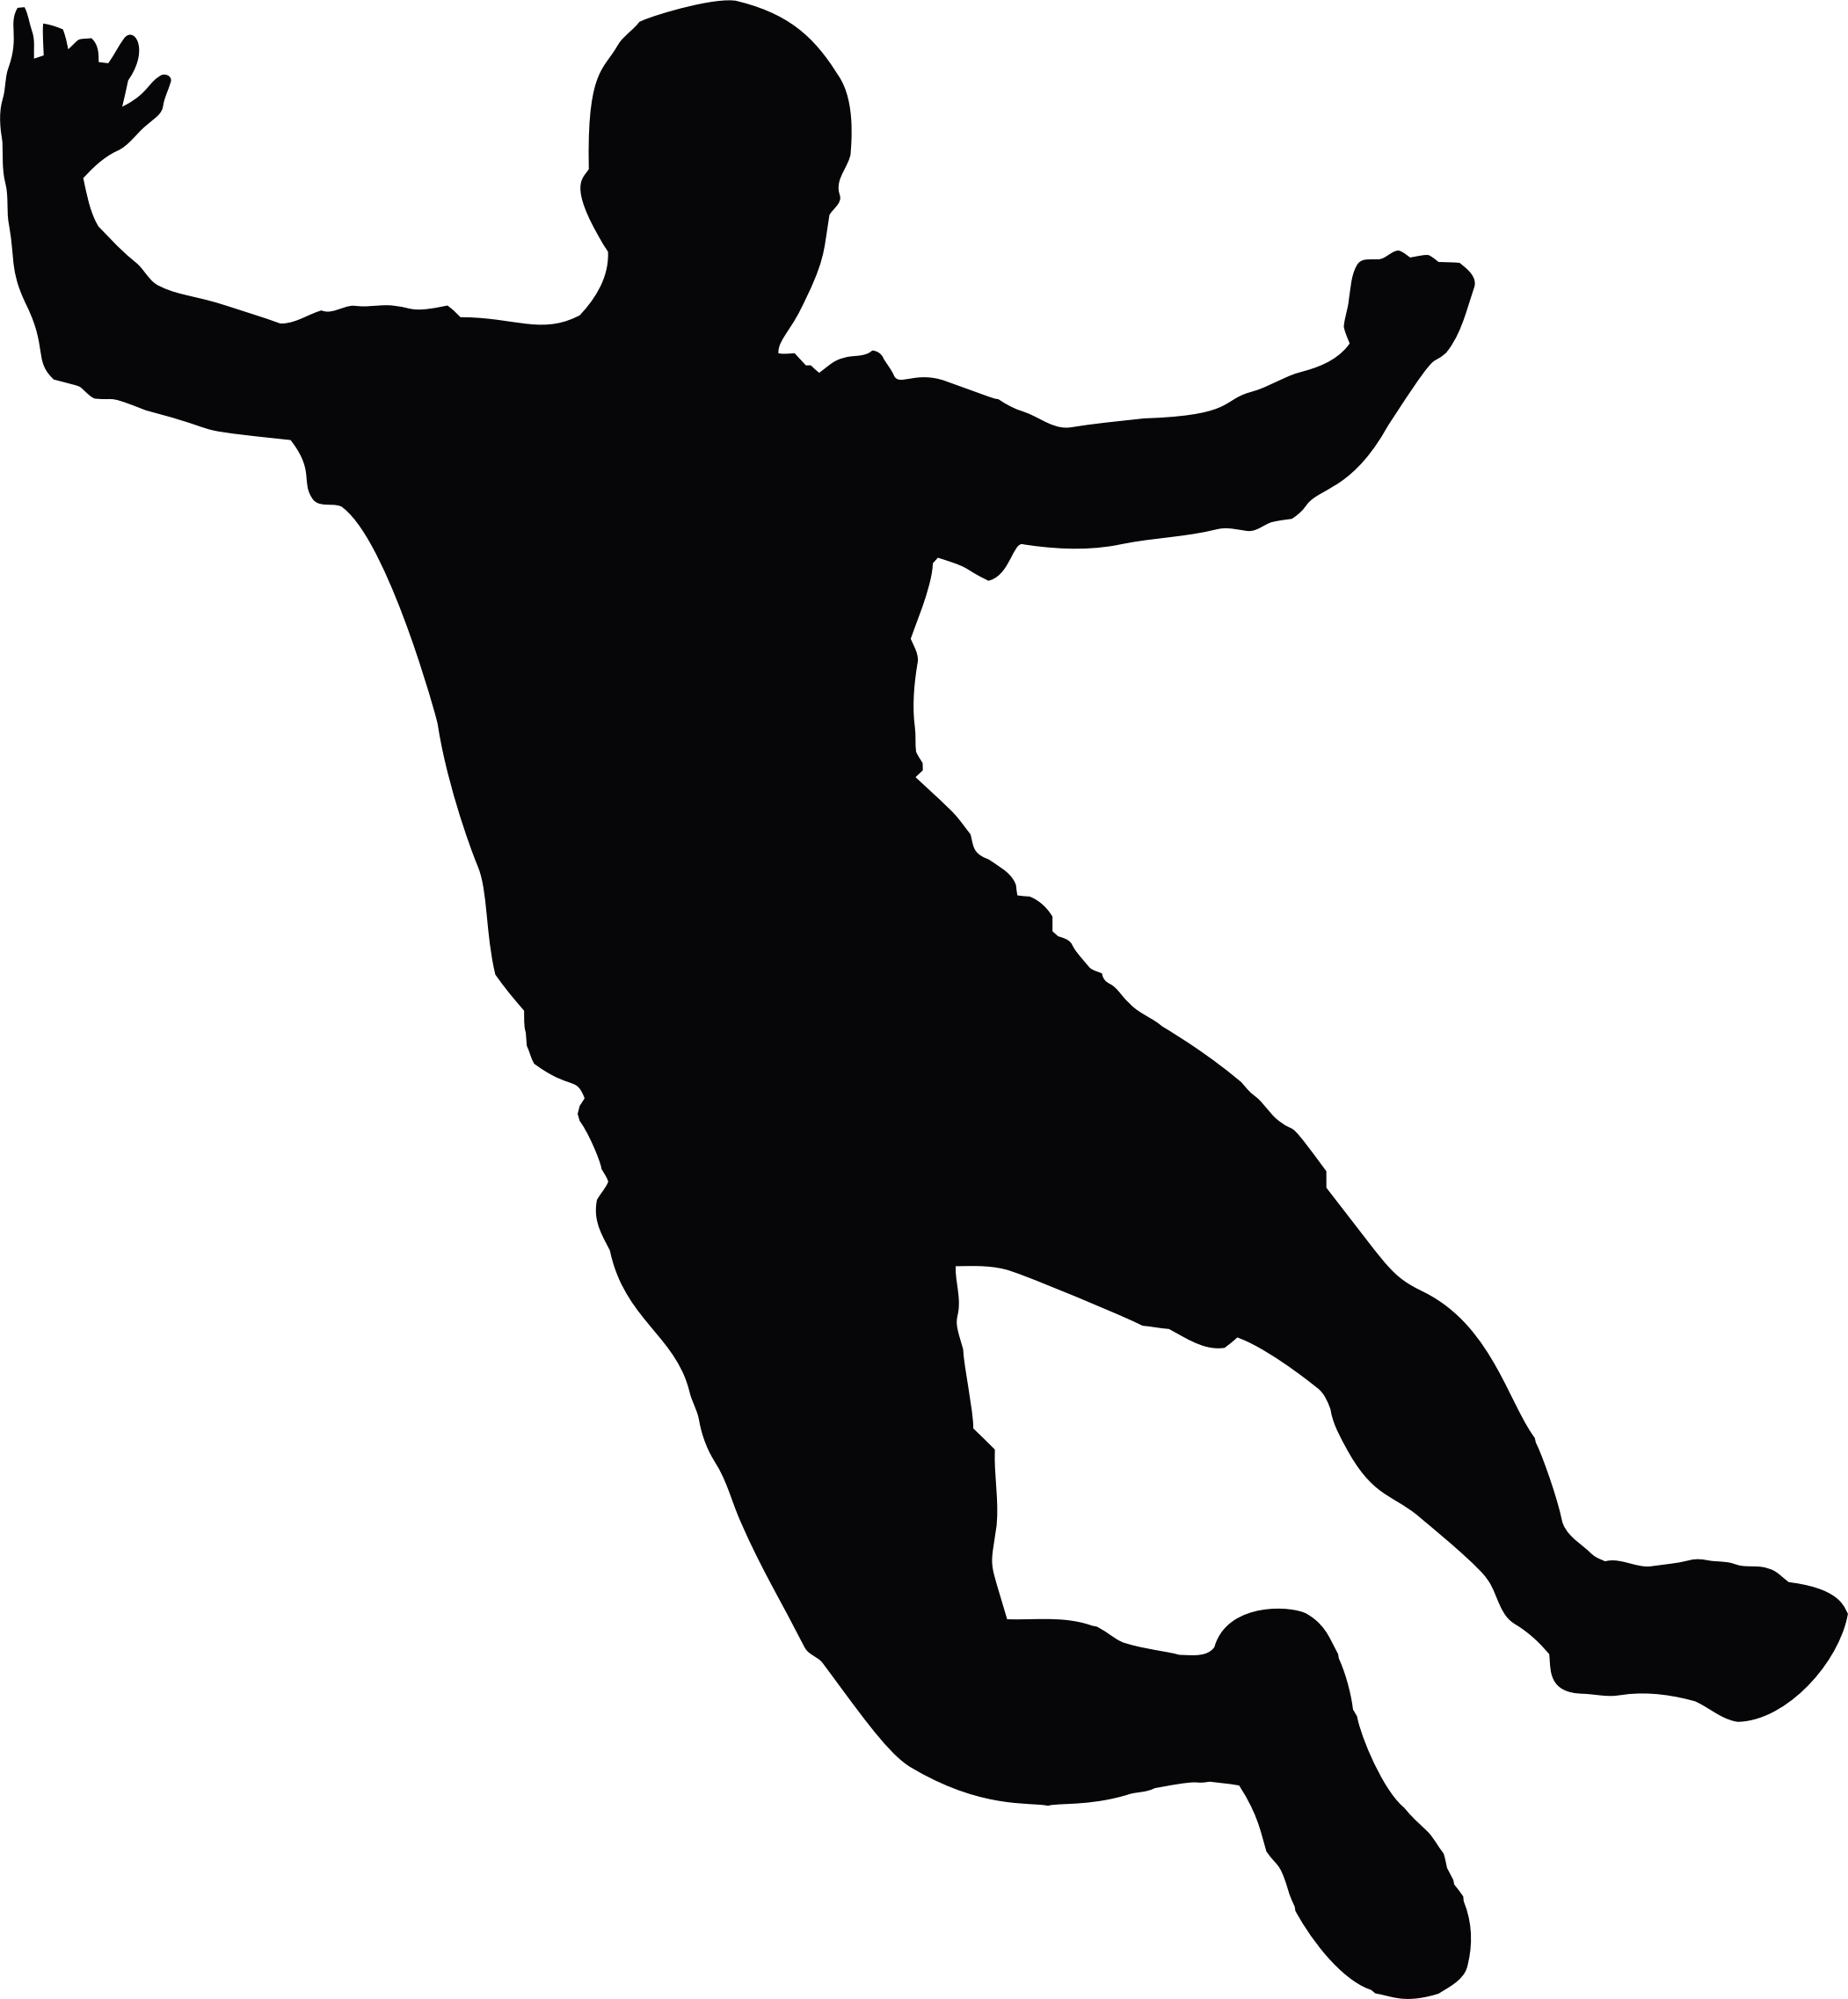 Silhouette Of A Man Jumping.